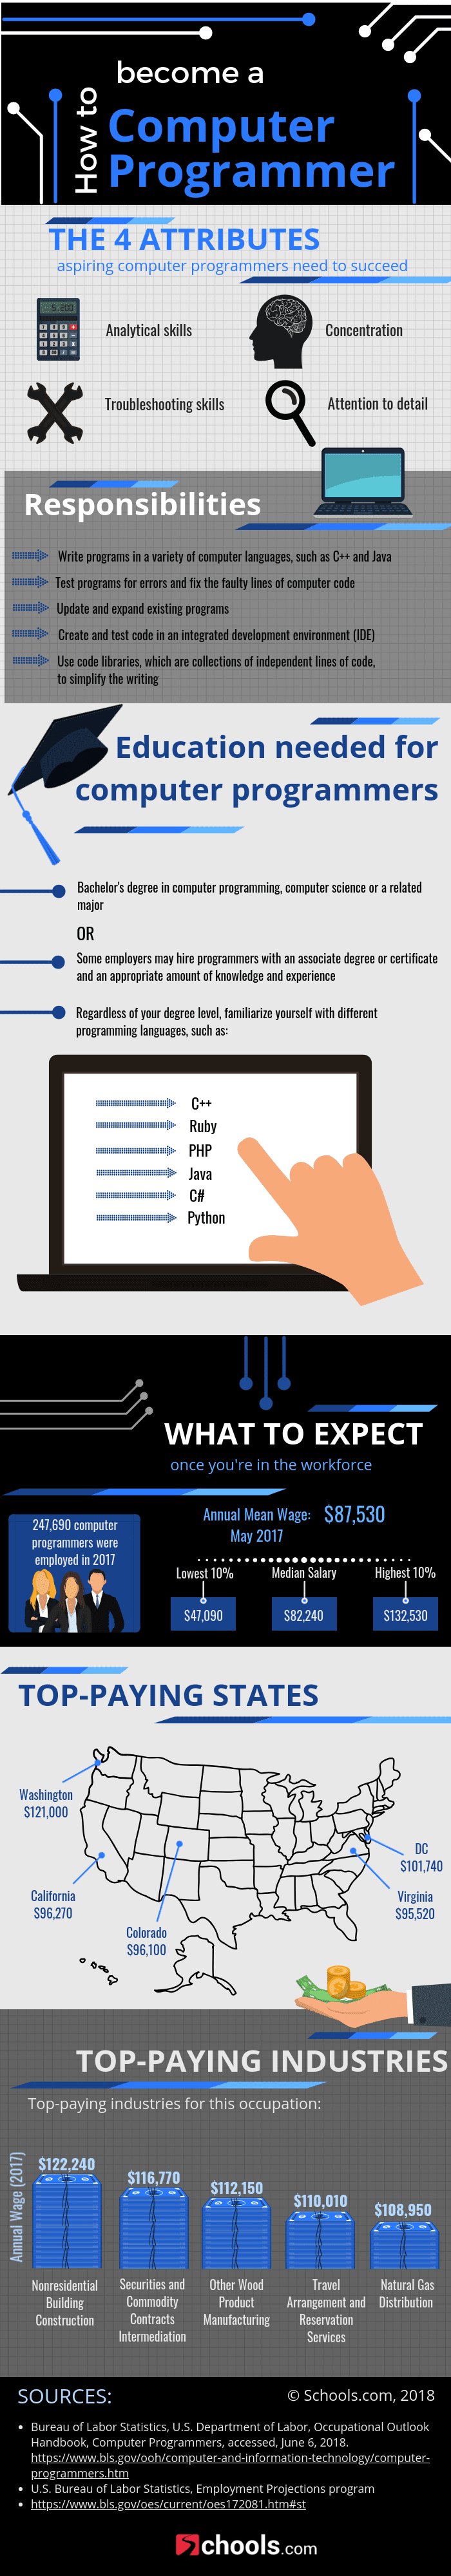 Build a Career as a Computer Programmer #infographic